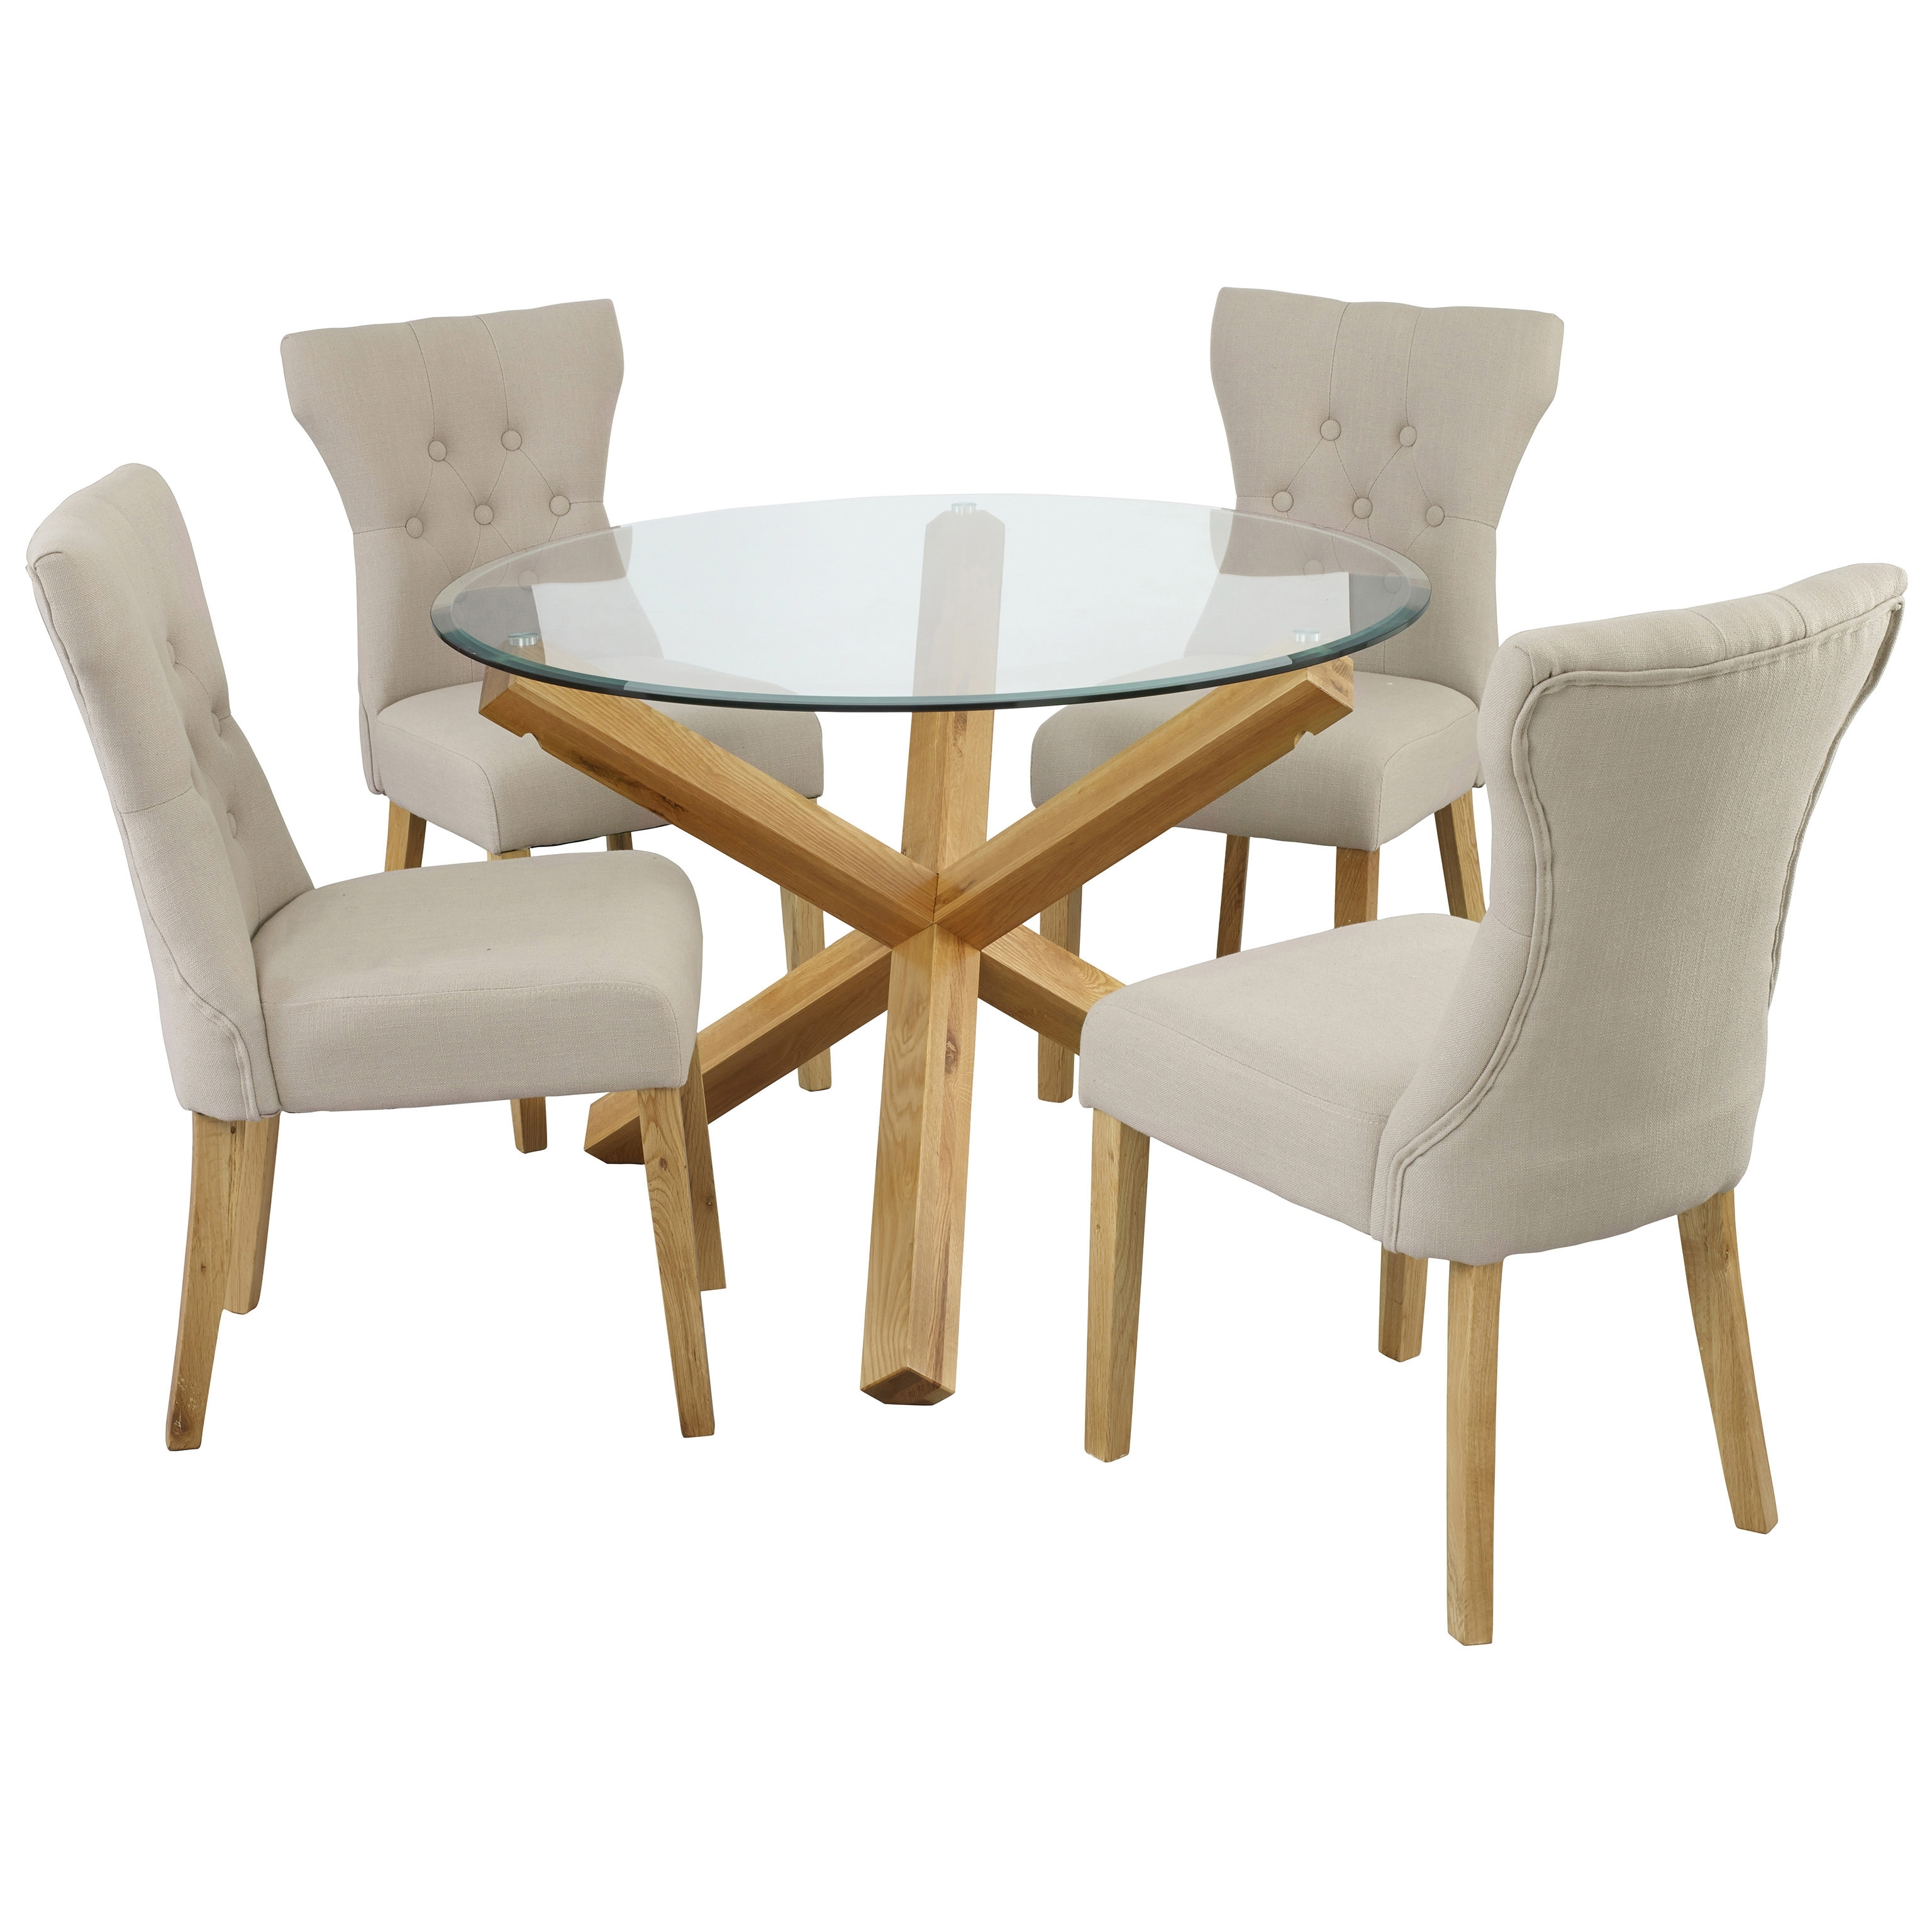 Fashionable Oak & Glass Round Dining Table And Chair Set With 4 Fabric Seats Throughout Oak And Glass Dining Tables Sets (View 10 of 25)